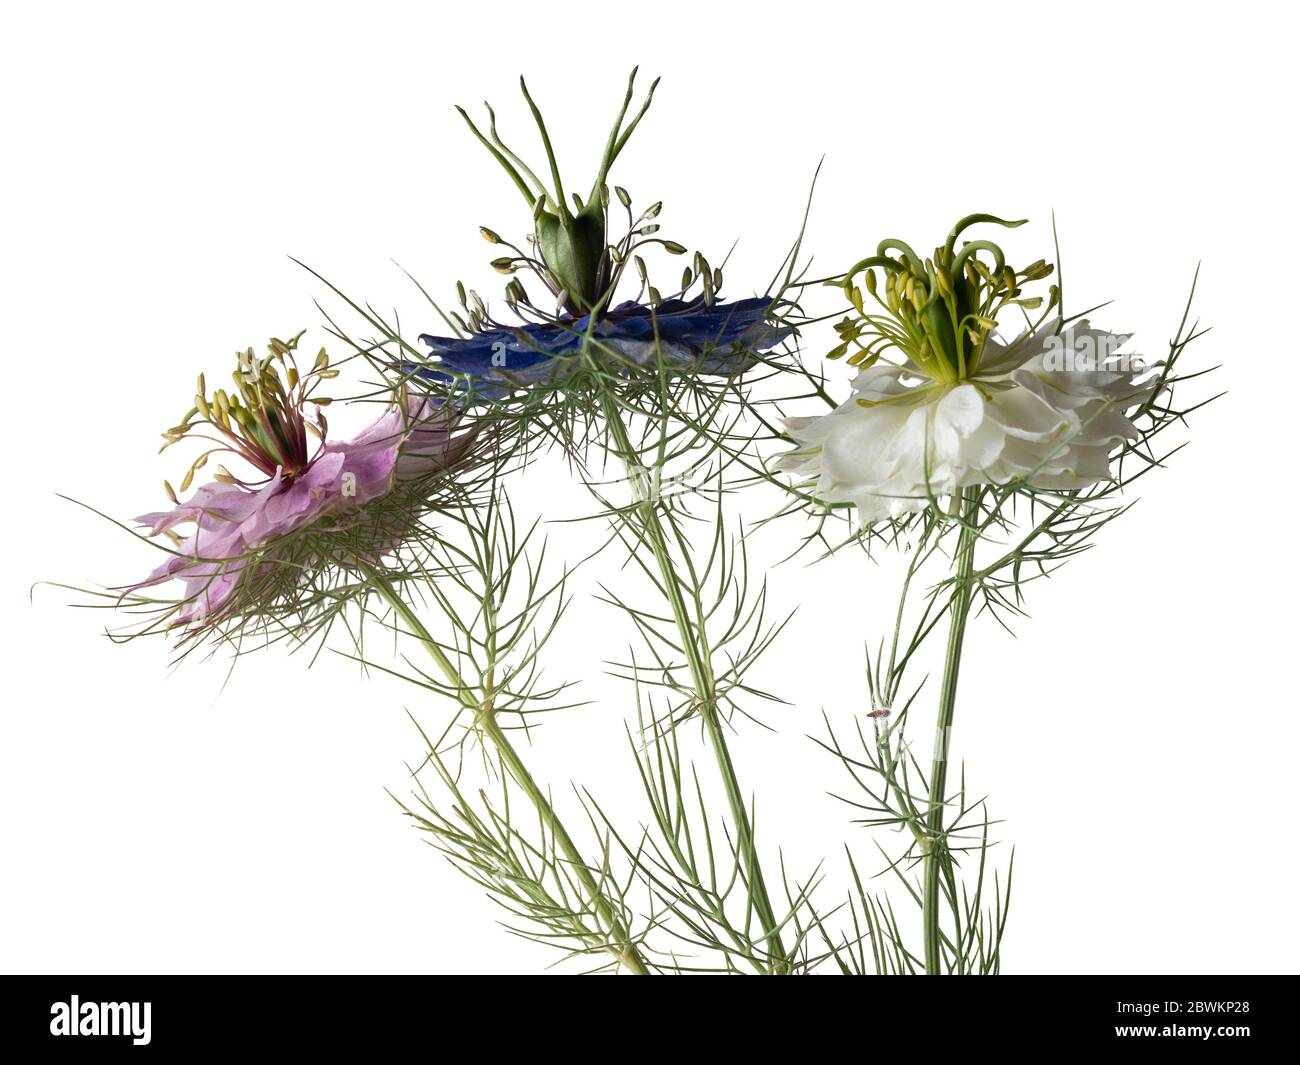 mixed-pink-white-and-blue-group-of-the-hardy-annual-love-in-the-mist-nigella-damascena-on-a-white-background-2BWKP28.jpg